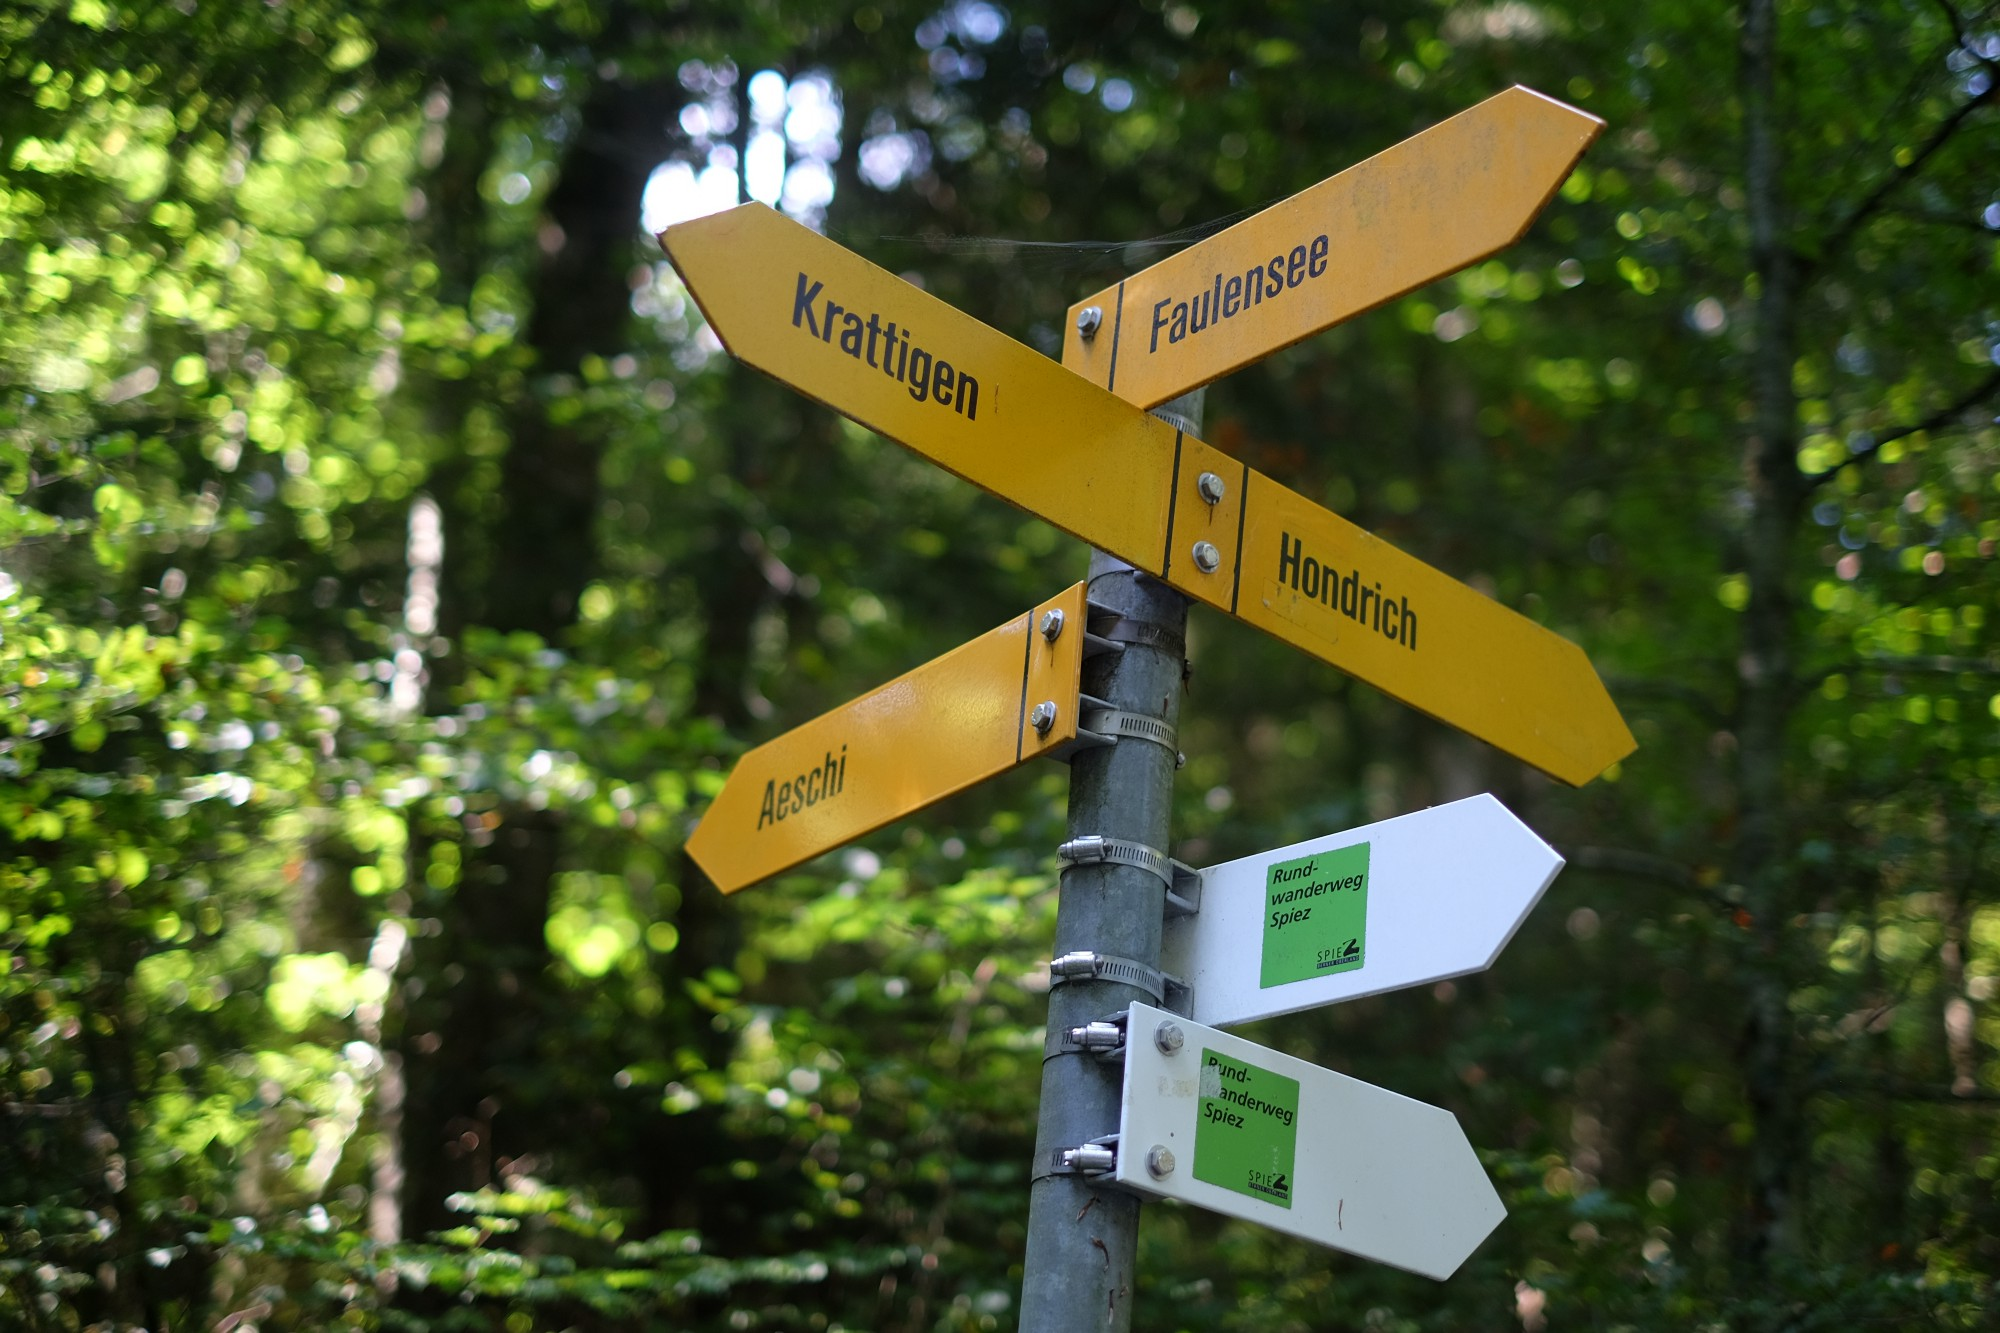 Signpost with direction arrows